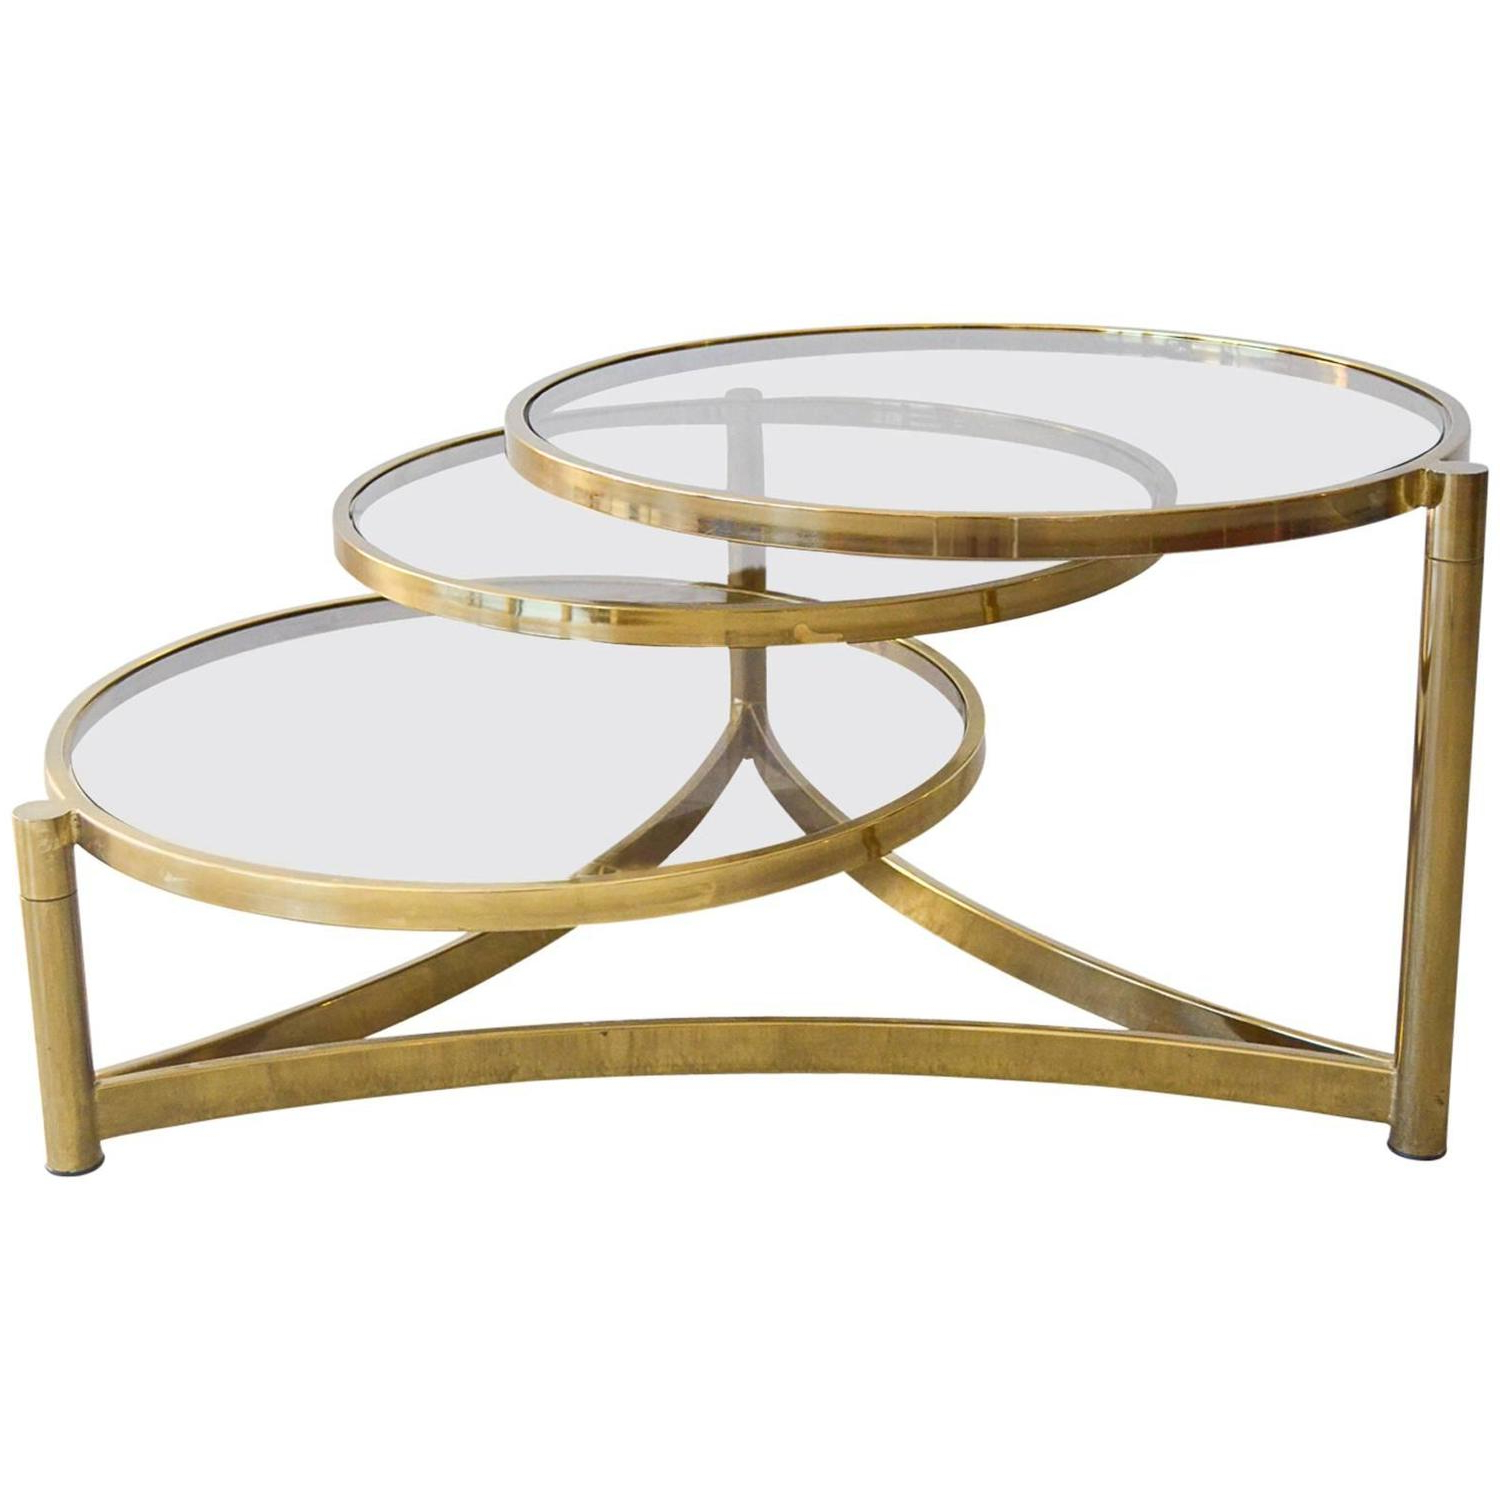 Acrylic Glass And Brass Coffee Tables Pertaining To Favorite Modern File Cabinet : The Perfect Real Round Brass End Table Images (View 15 of 20)